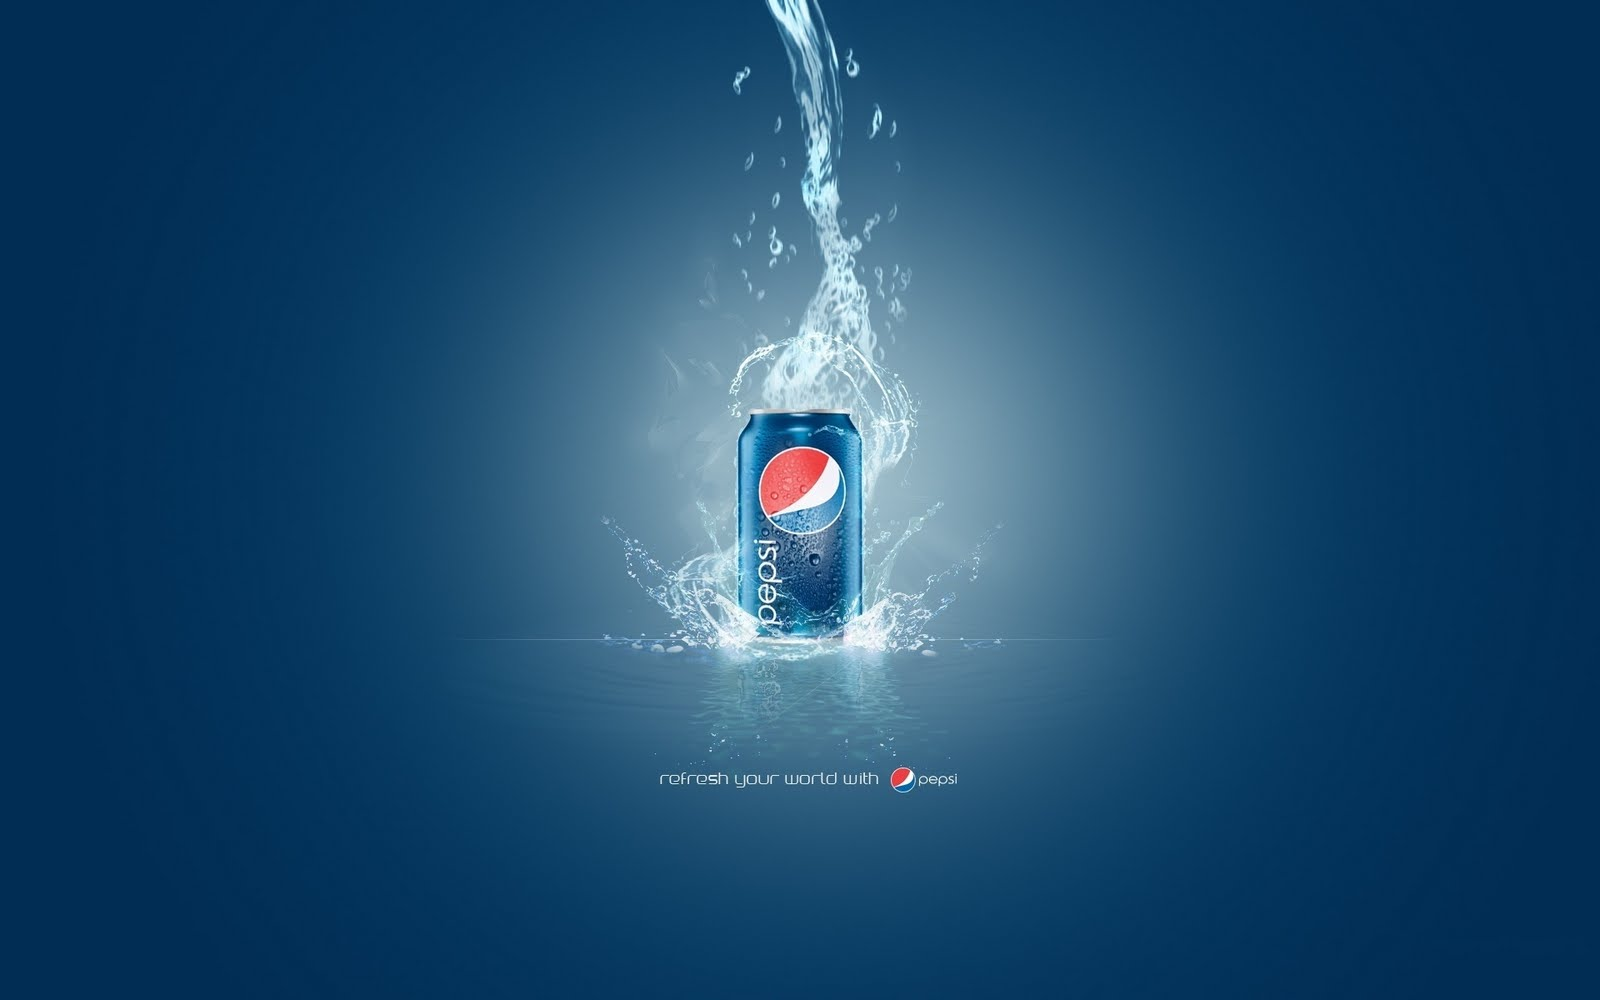 pepsi pictures images wallpapers_Desktop Wallpaper · Gallery1024 ...